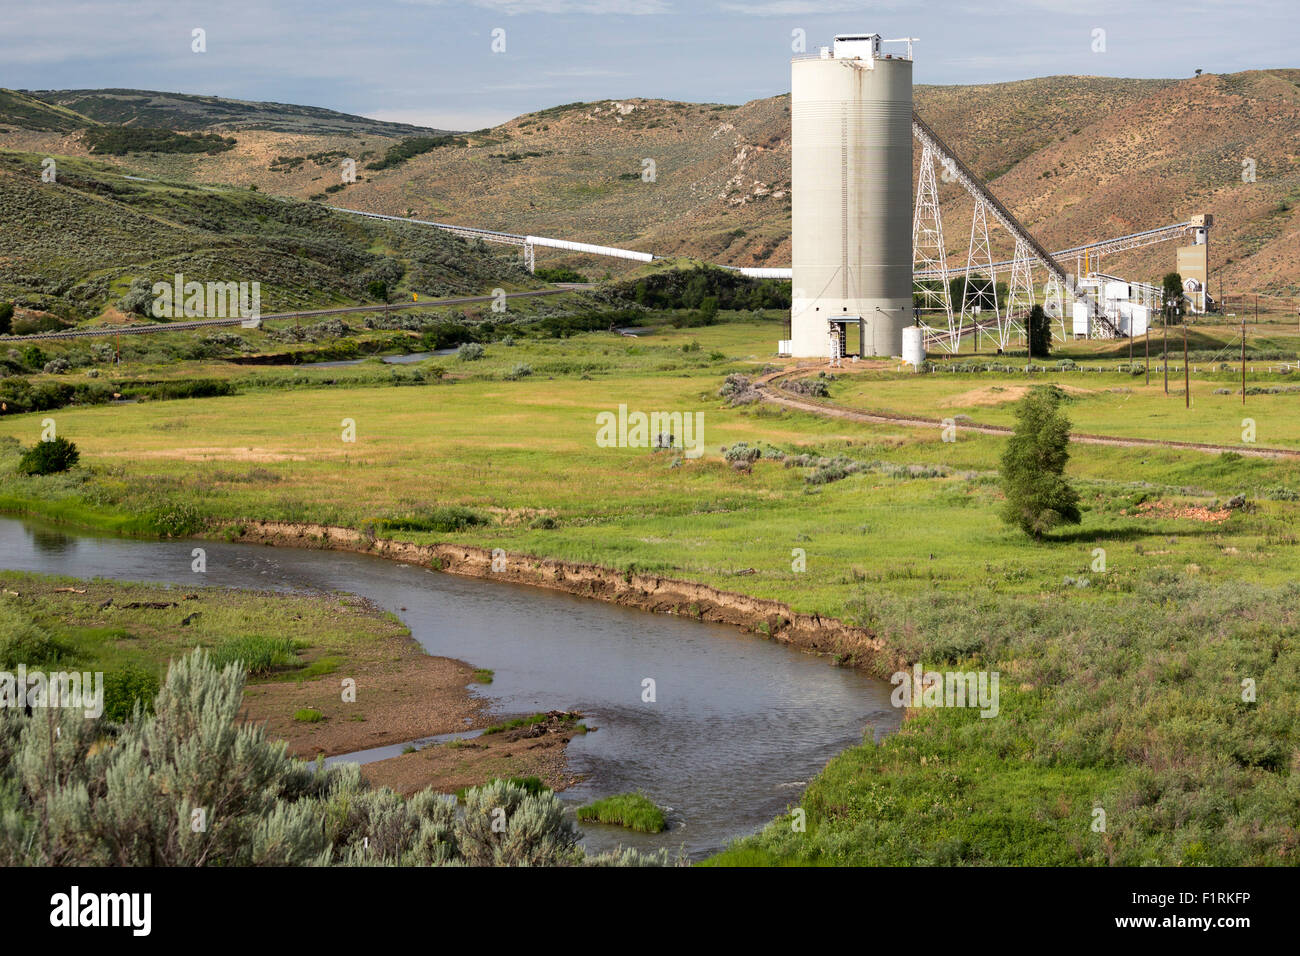 Craig, Colorado - A facility for loading coal from a nearby mine onto rail cars. Stock Photo